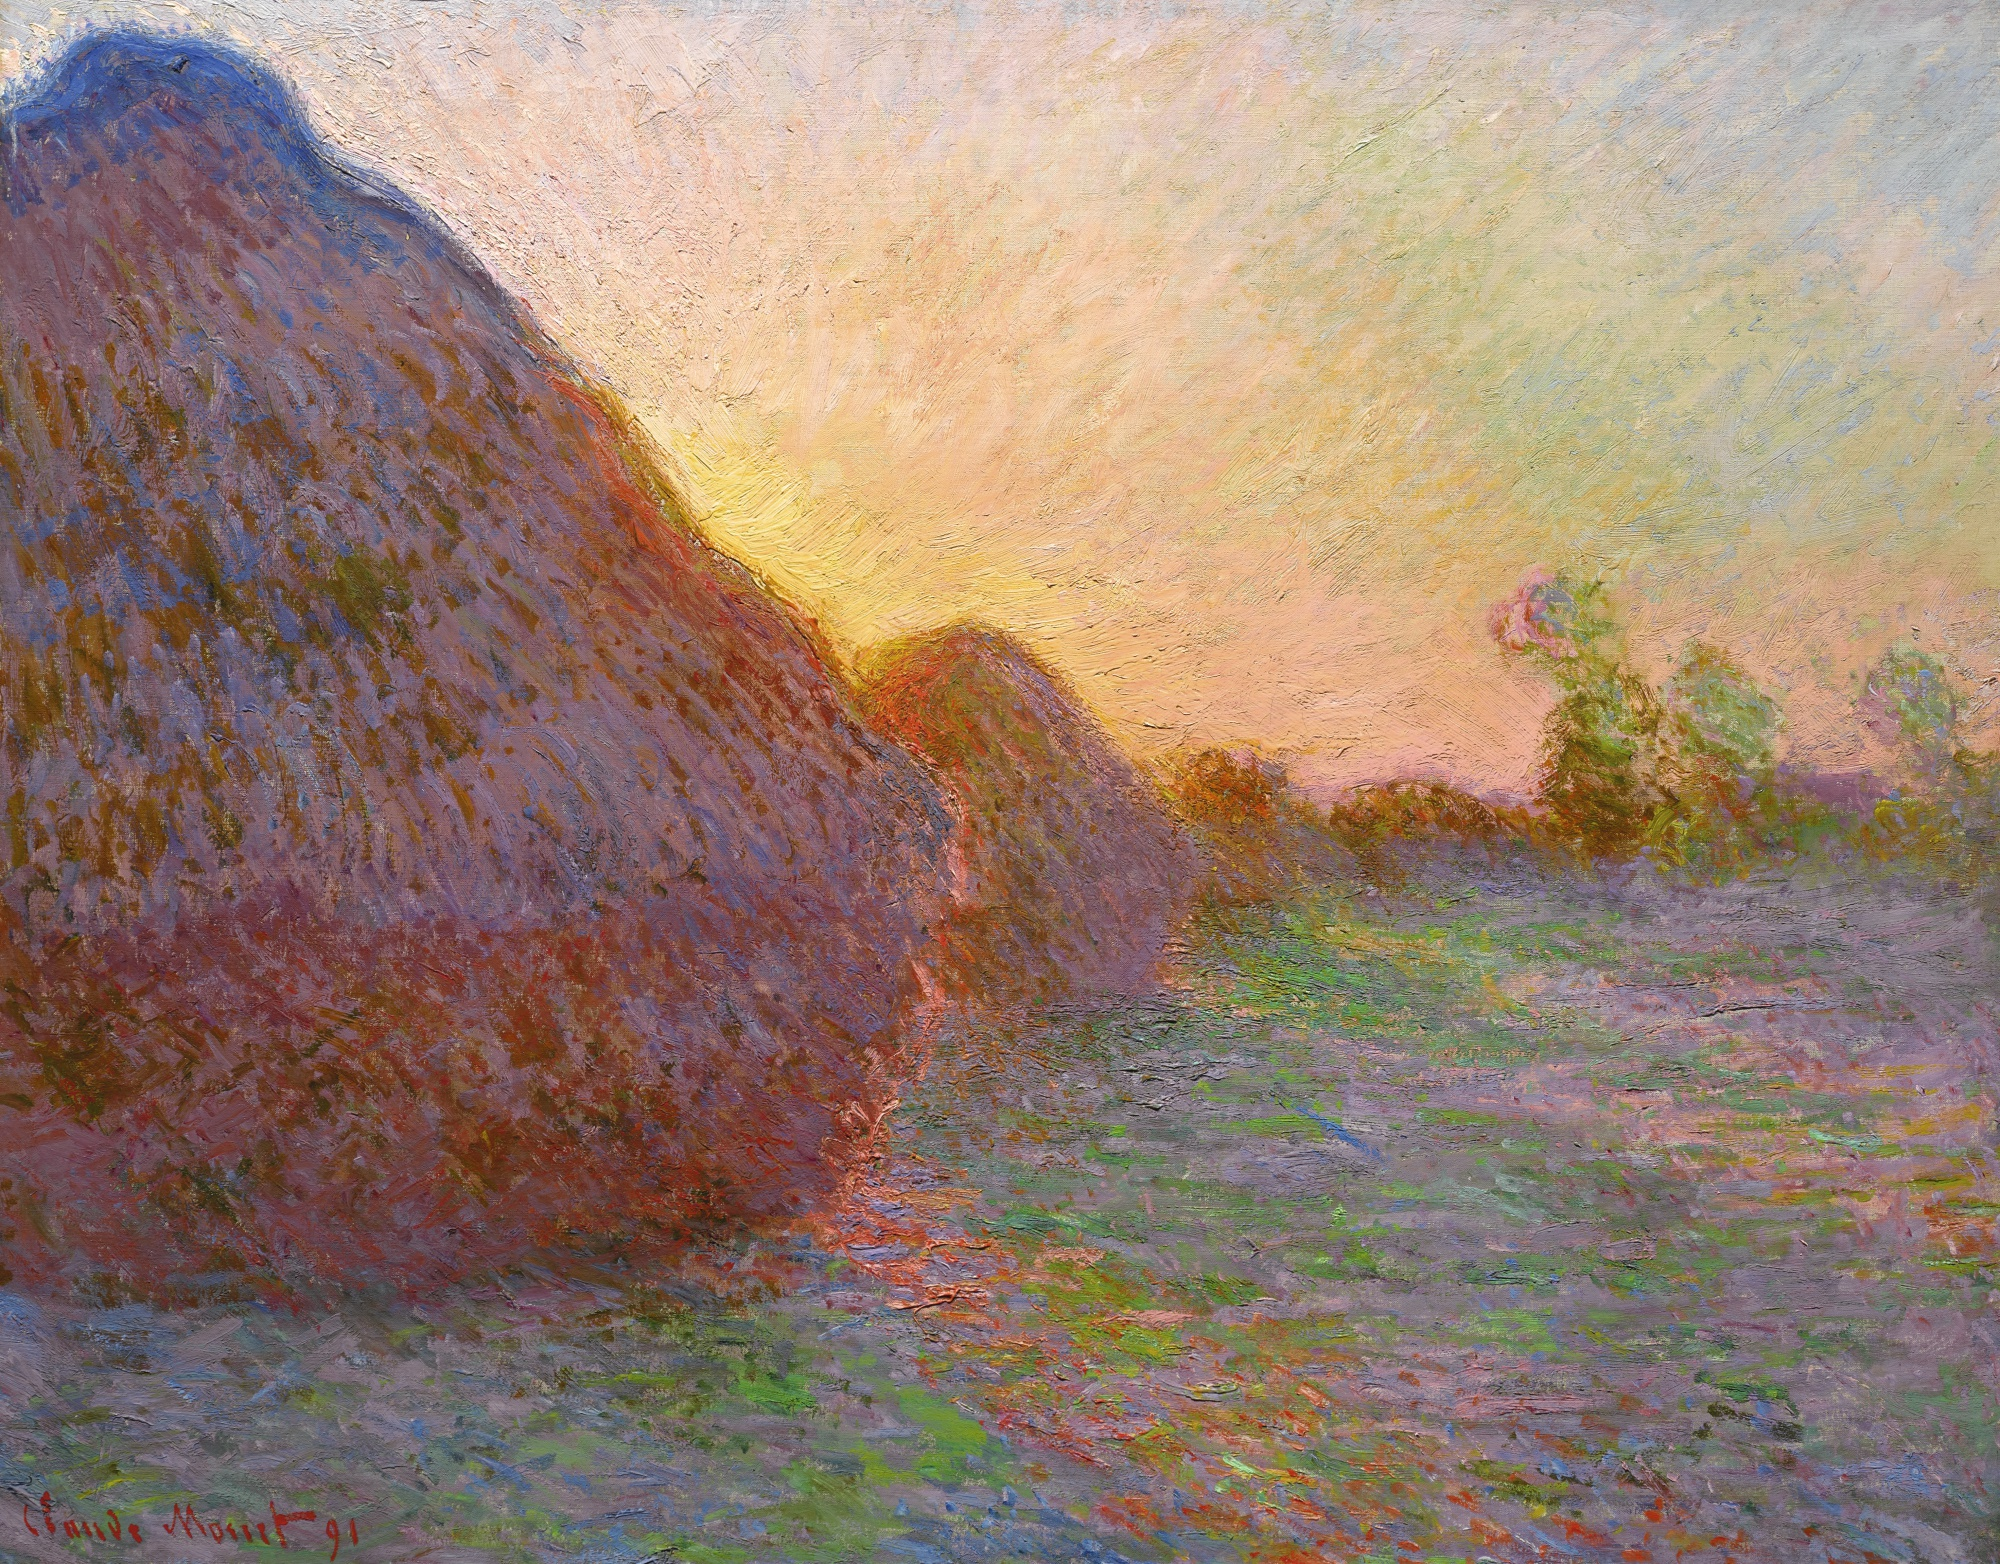 Meules, Claude Monet. 1890, oil on canvas. Image: Sotheby's